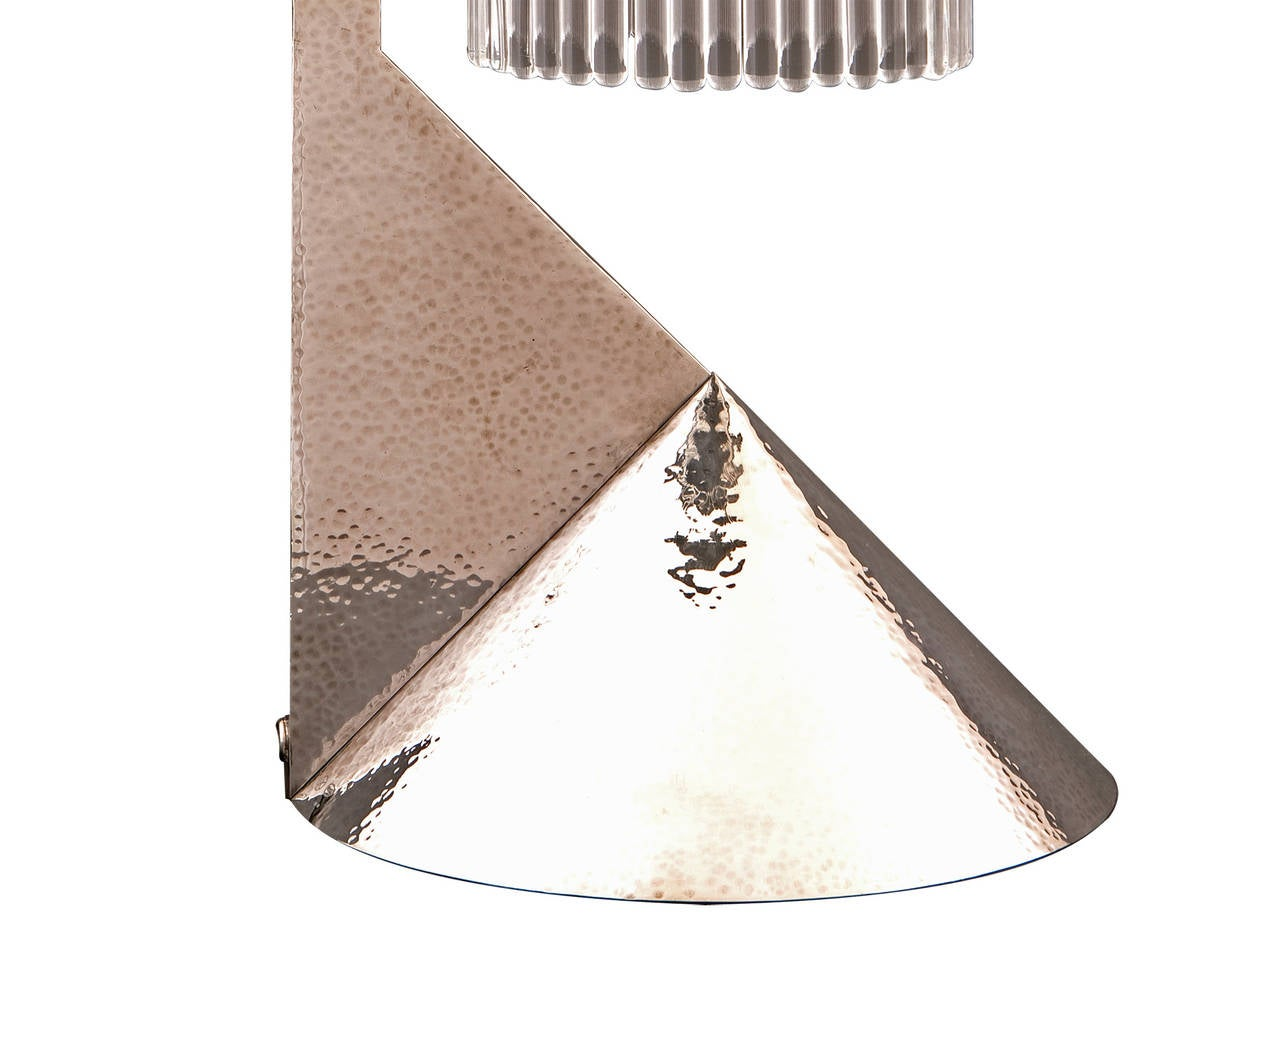 Hammered Koloman Moser Designed Solid Silver Lamp Reproduced by Woka Lamps, 2003 For Sale